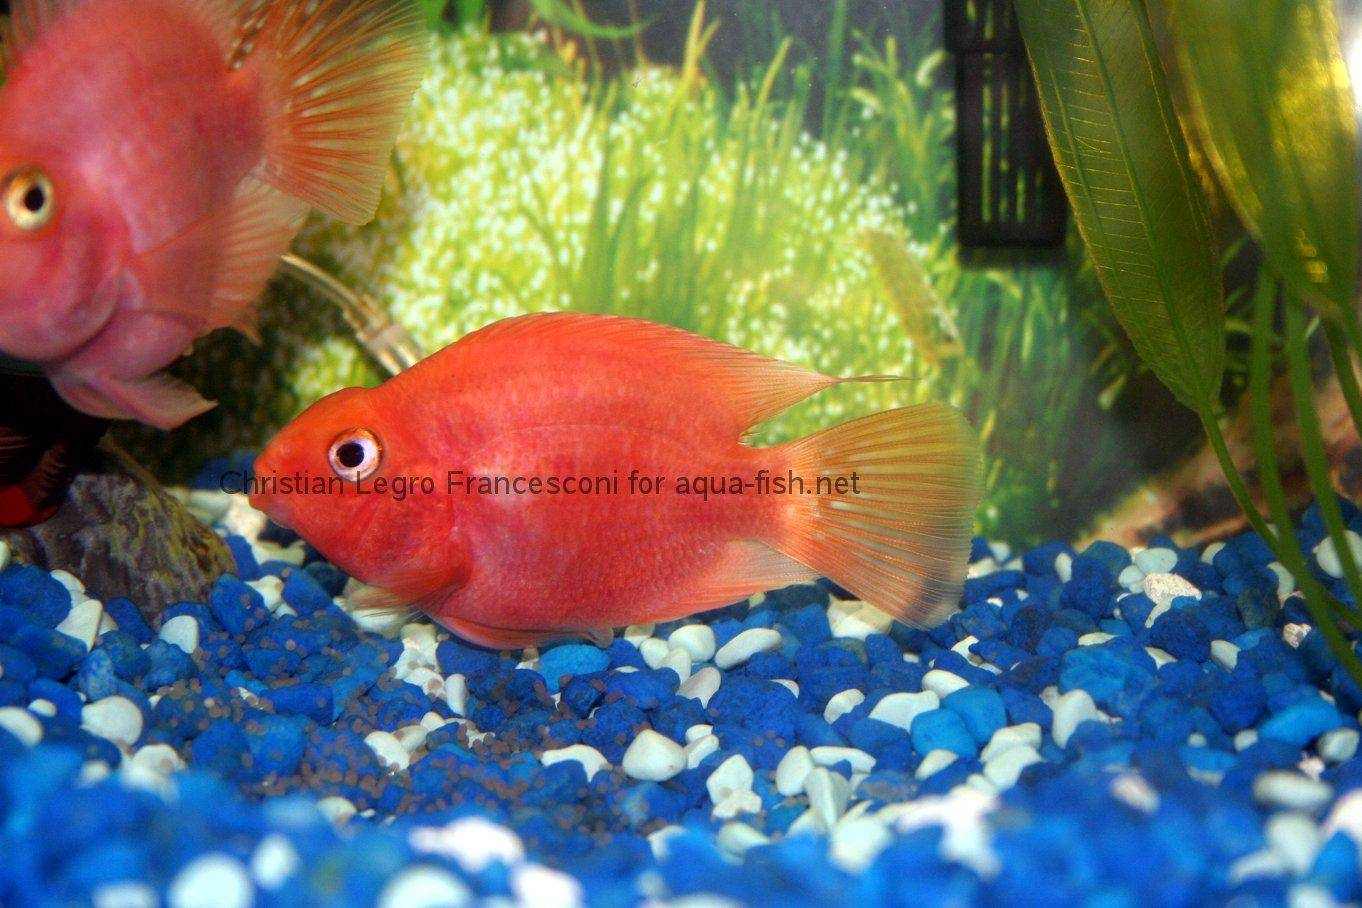 A page and forum devoted to keeping Blood parrot cichlids